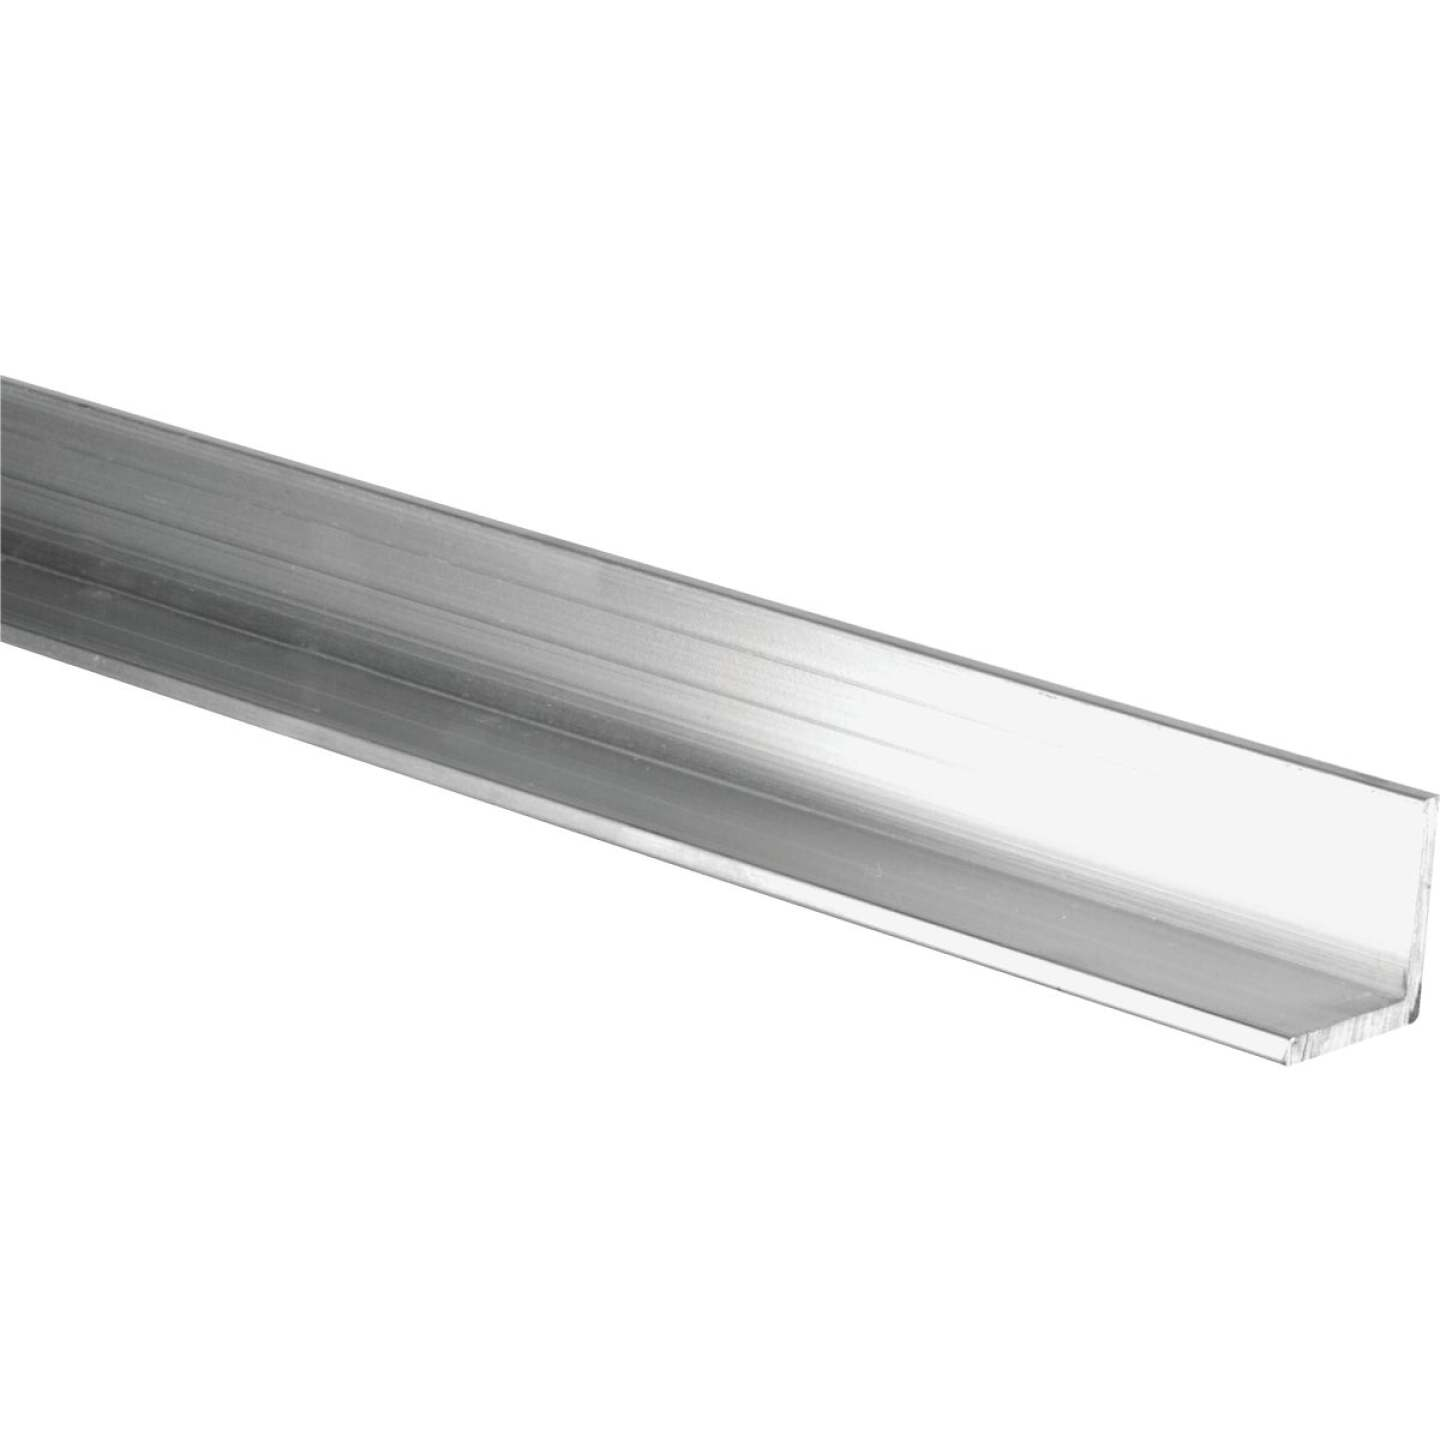 HILLMAN Steelworks Mill 1-1/2 In. x 8 Ft., 1/16 In. Aluminum Solid Angle Image 1